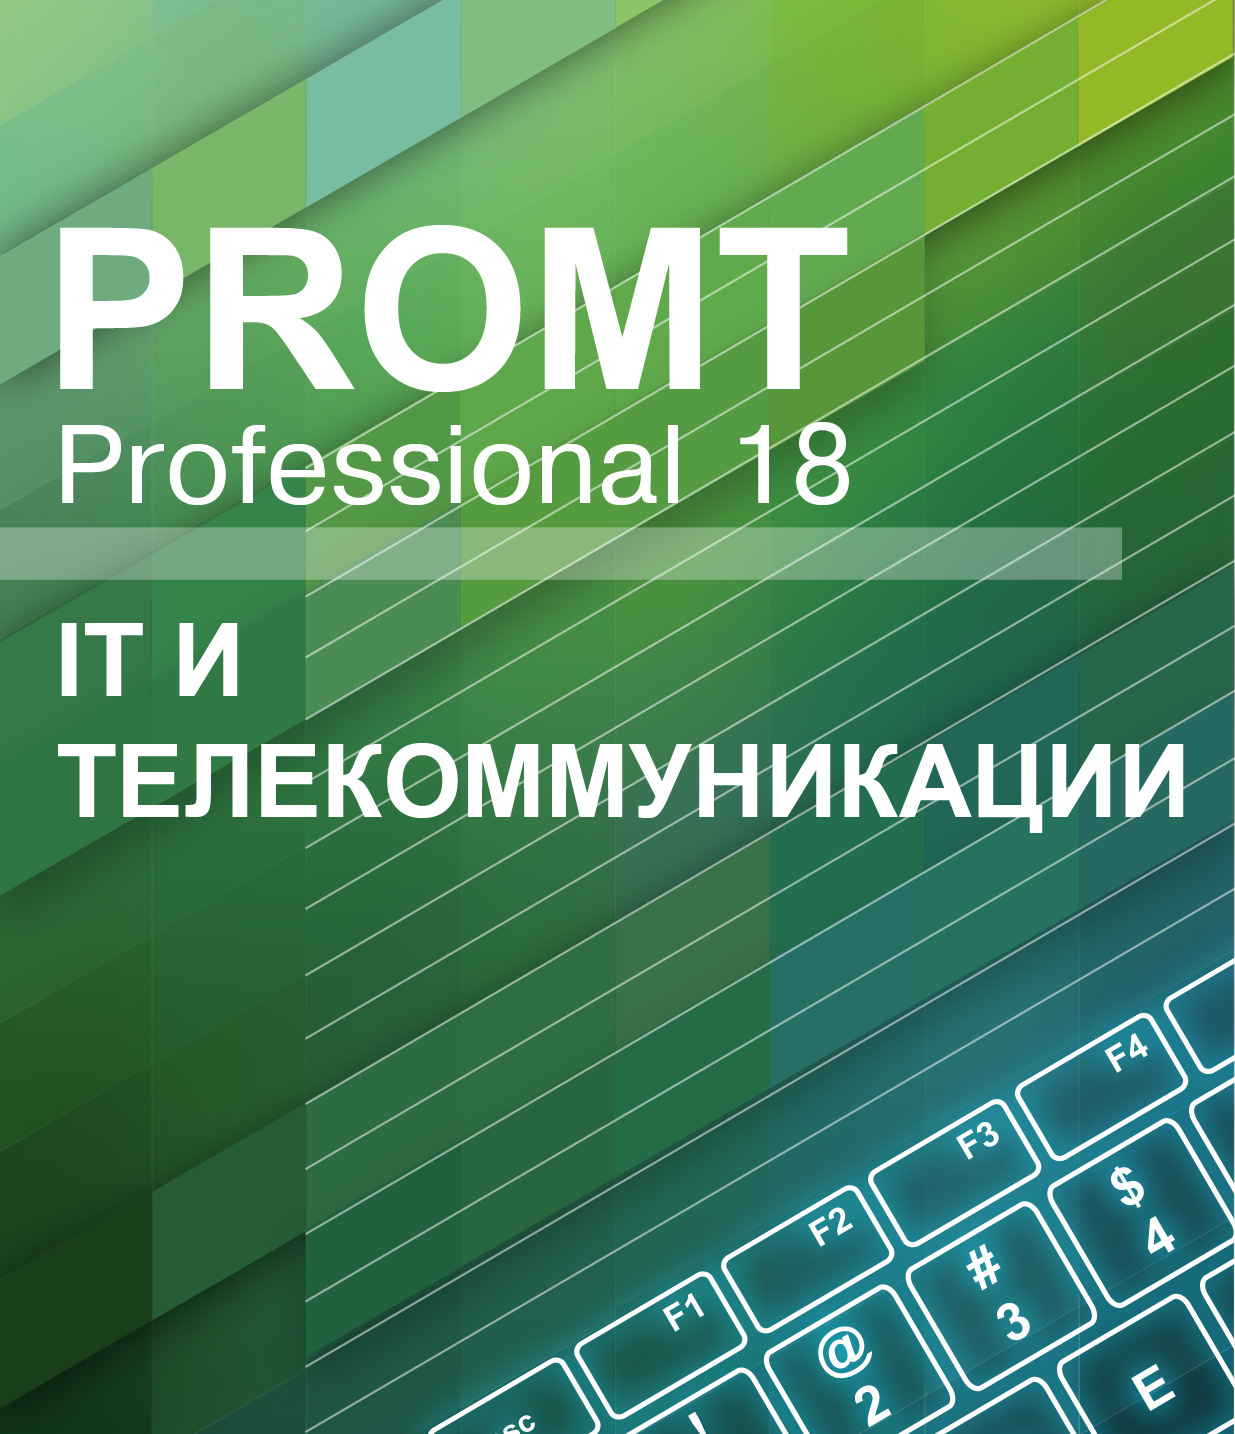 PROMT Professional 18 IT и телекоммуникации